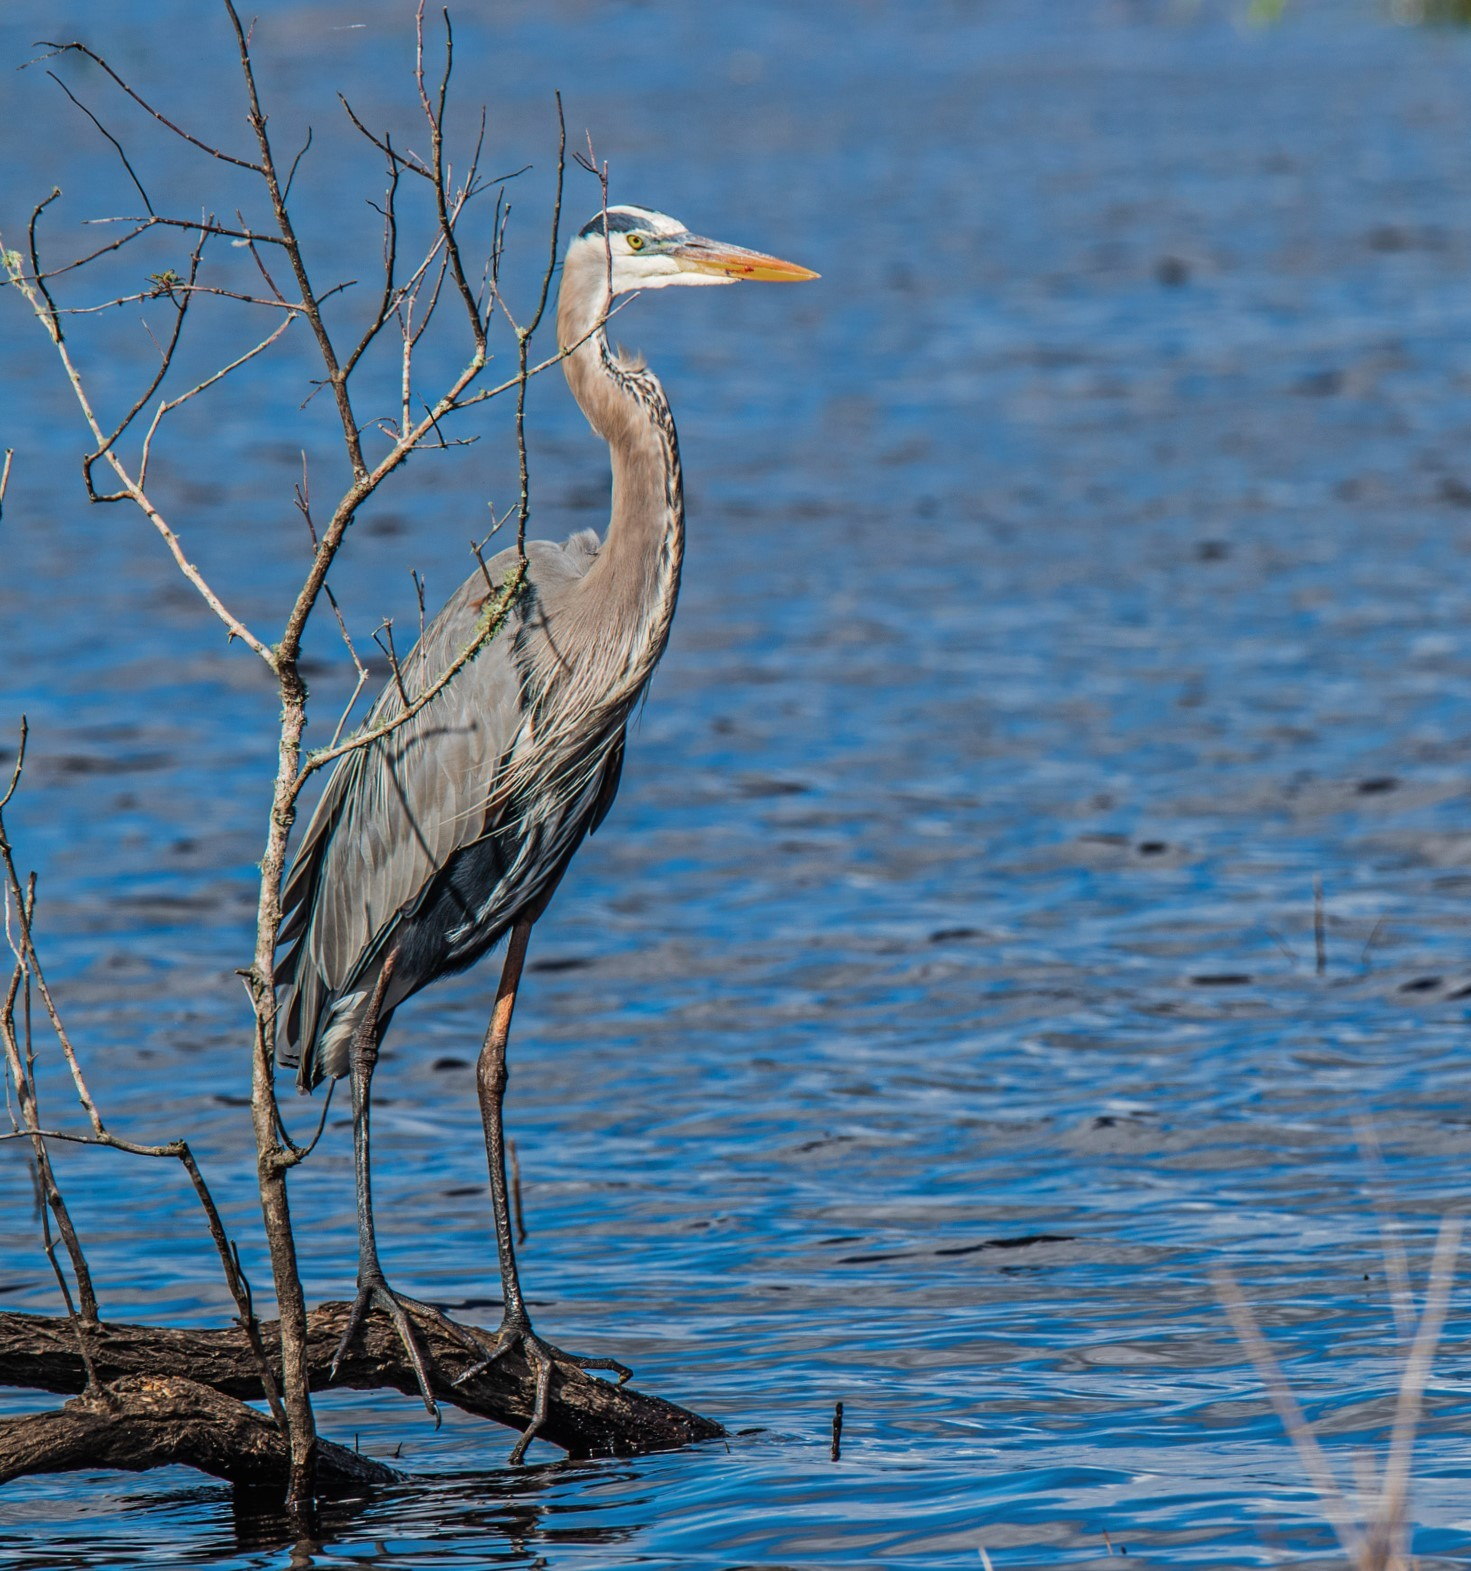 056-GBH-branch-over-water-(3)-f.jpg